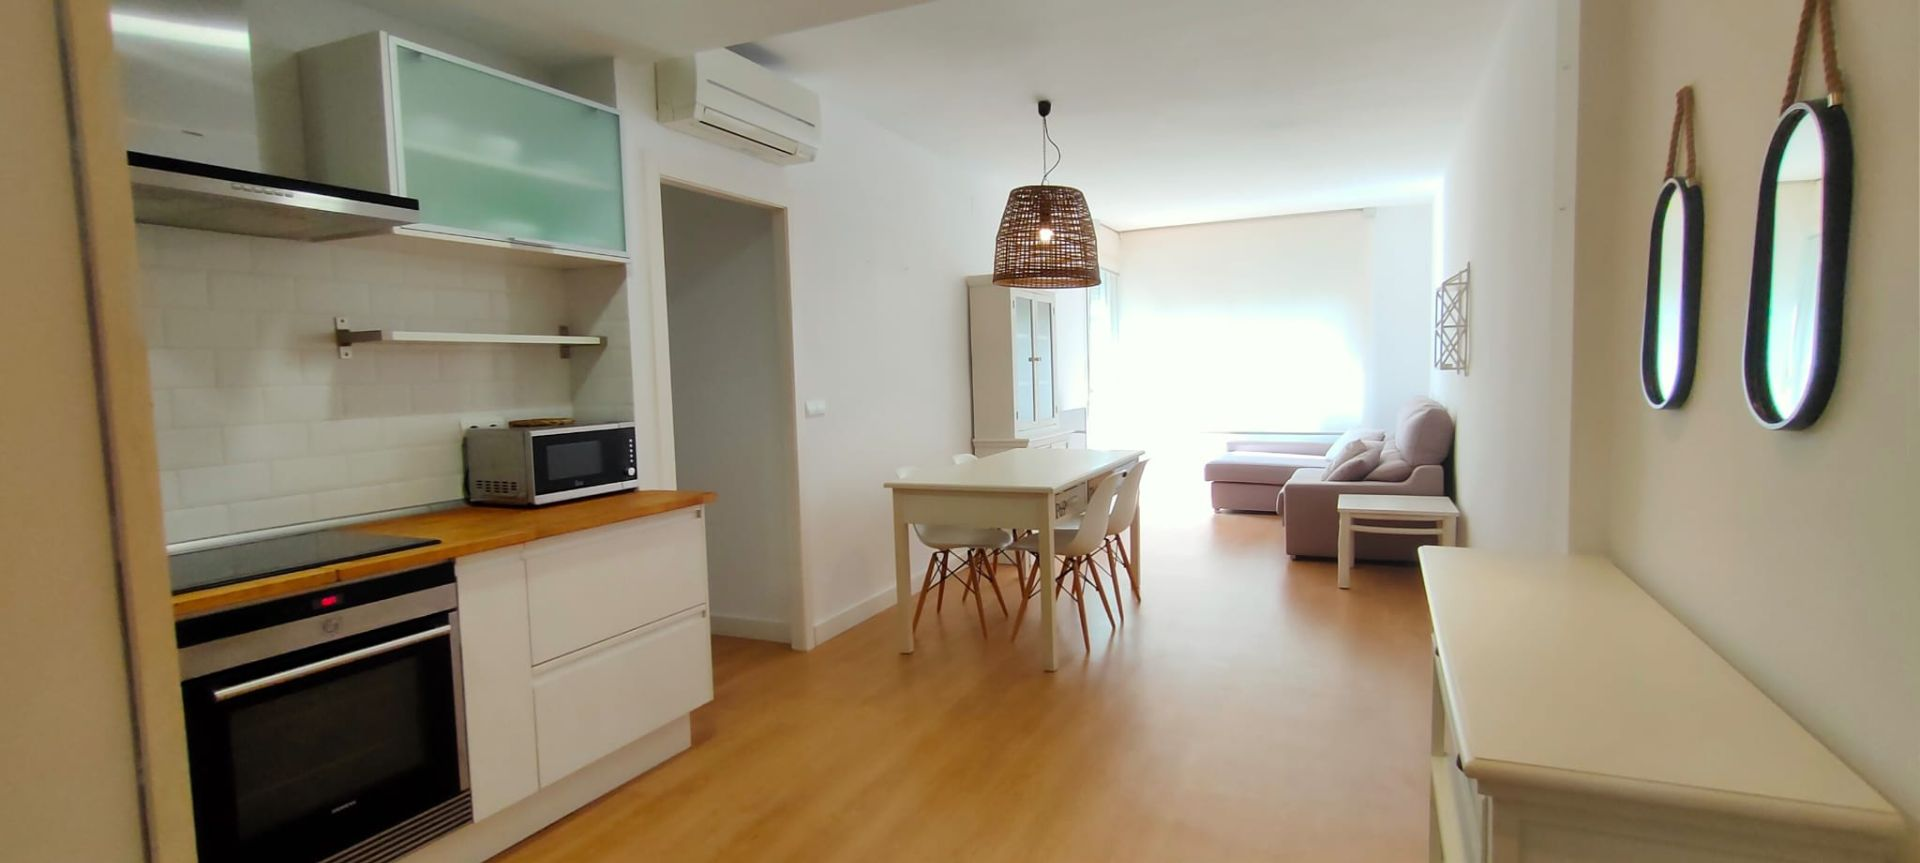 Grand Appartement à Ibiza, baleares, vente